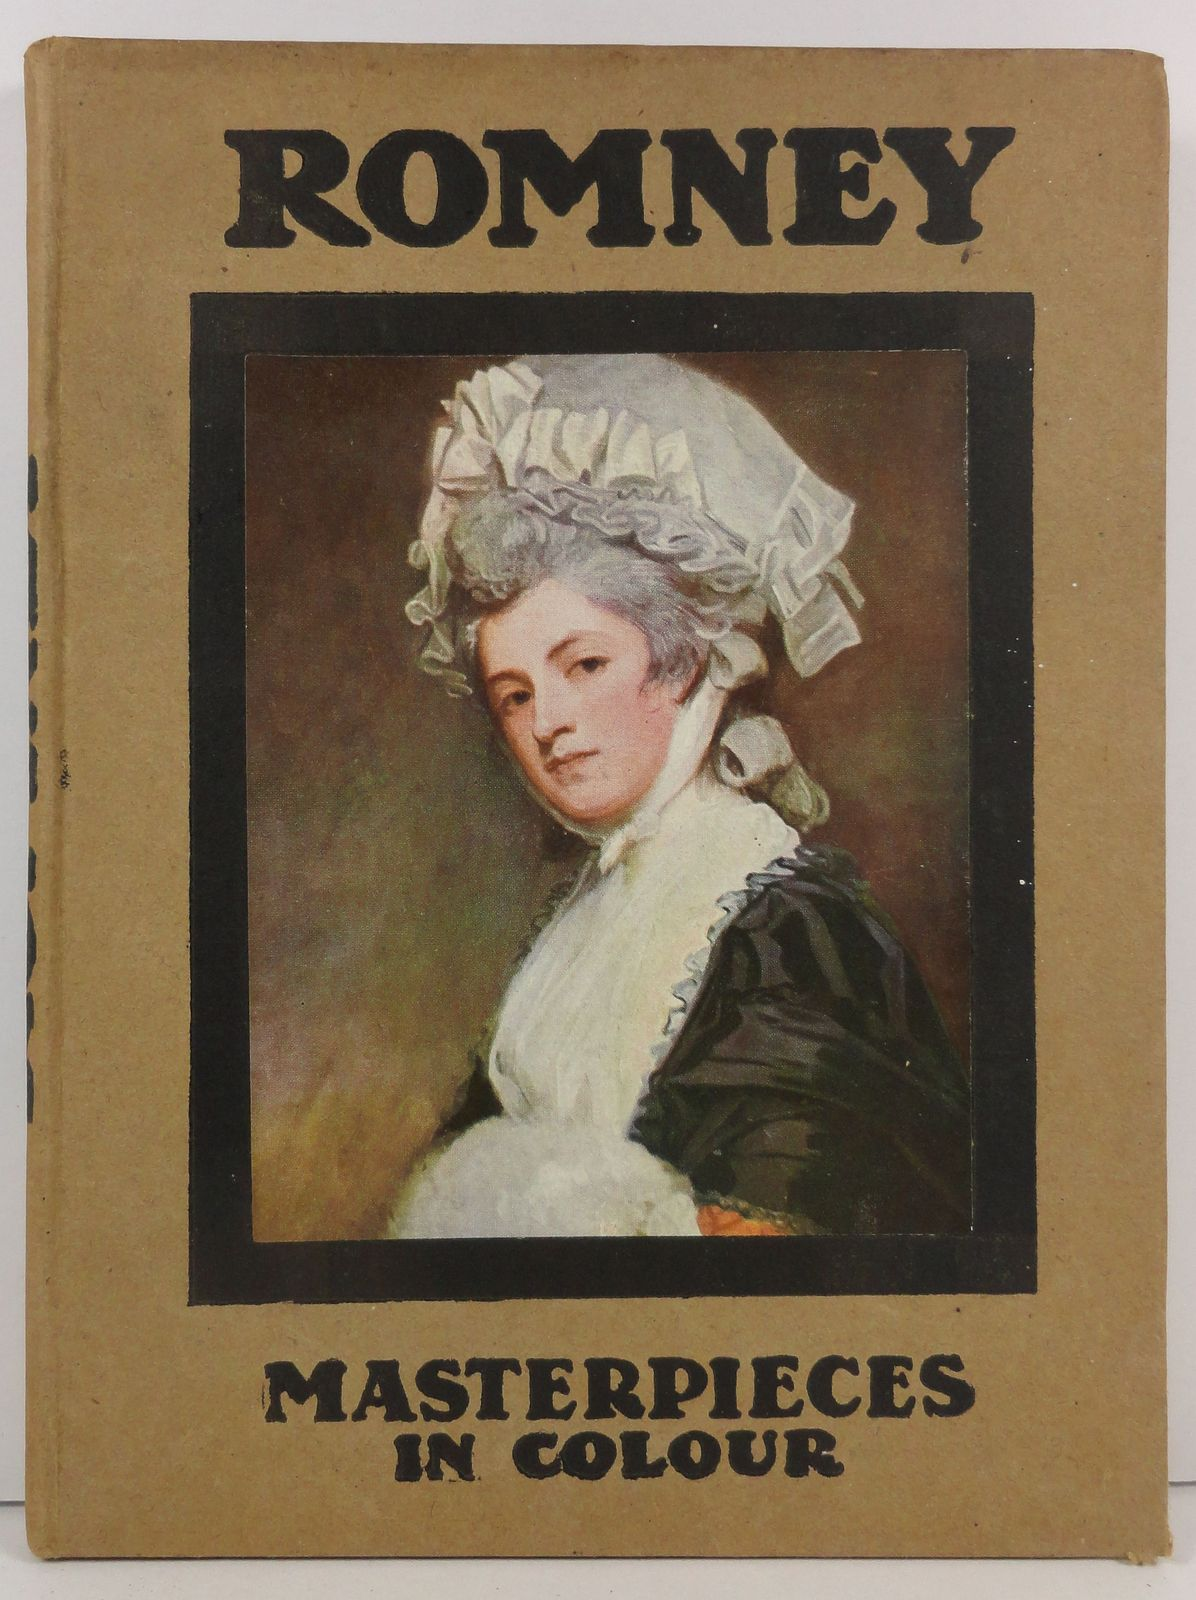 Romney Masterpieces in Colour by C. Lewis Hind